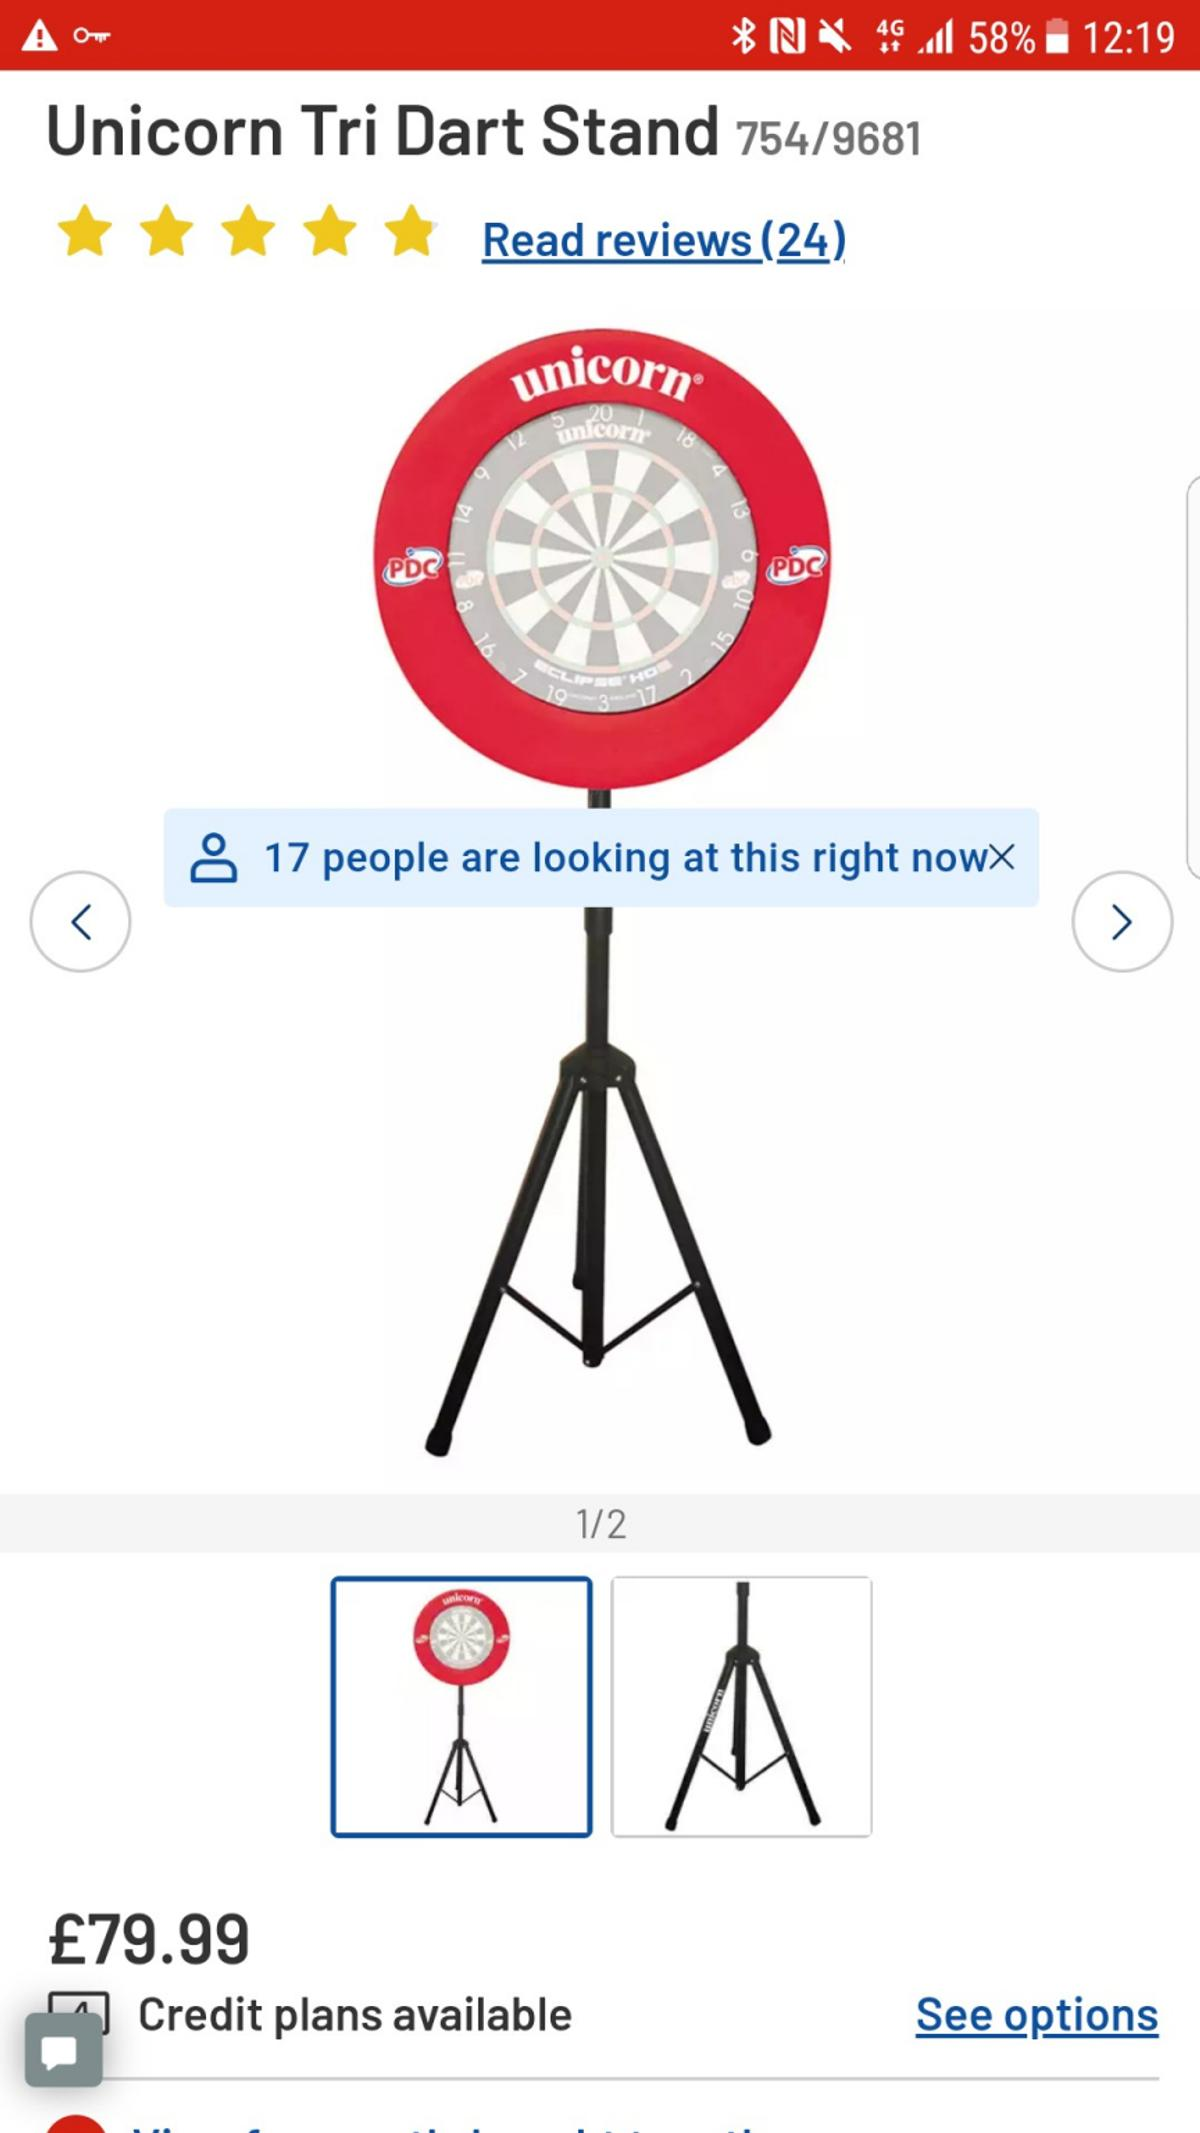 used twice. includes dartboard and set of darts if needed